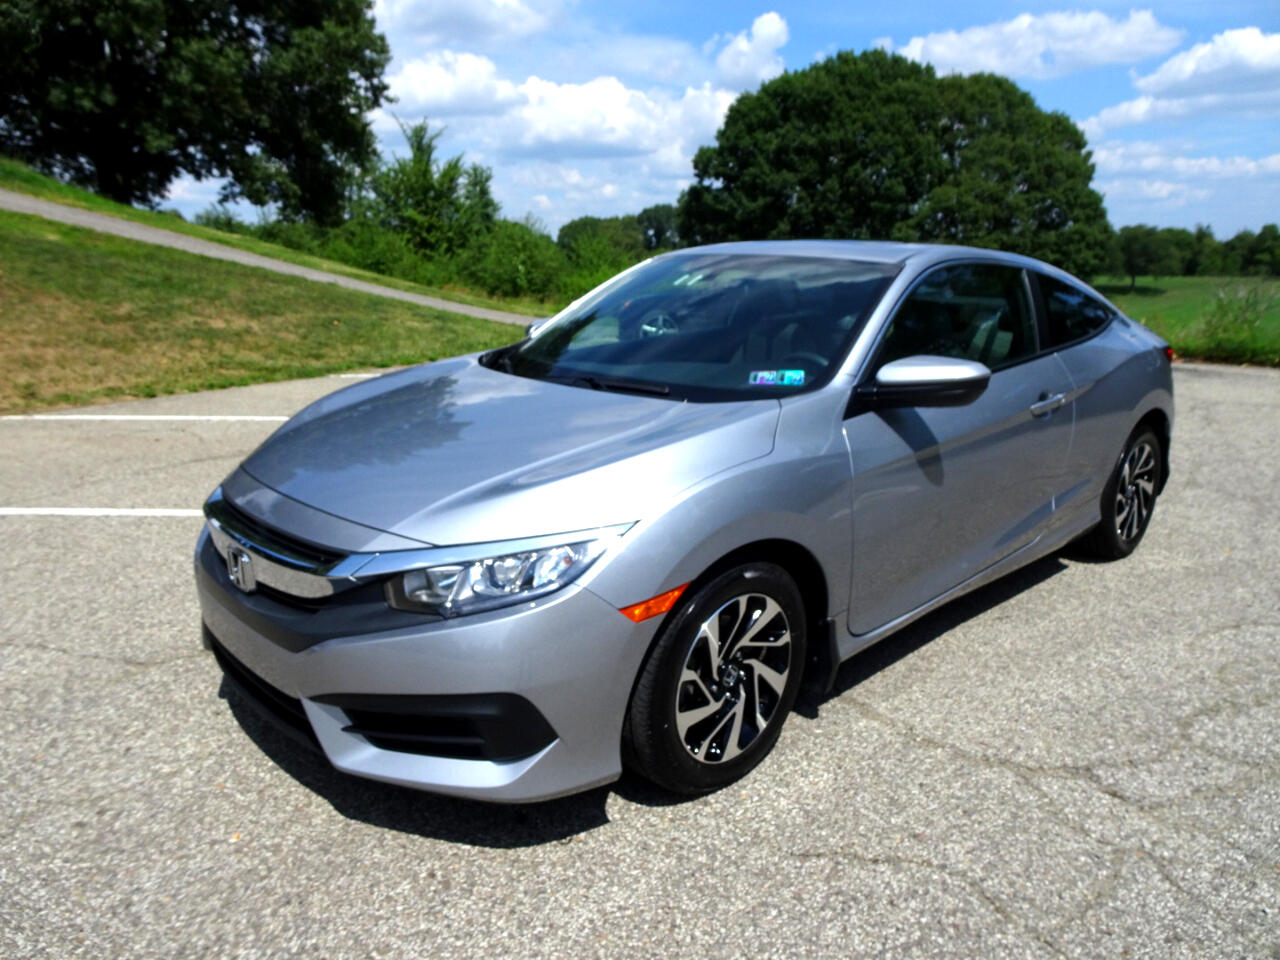 Honda Civic LX-P Coupe CVT 2017